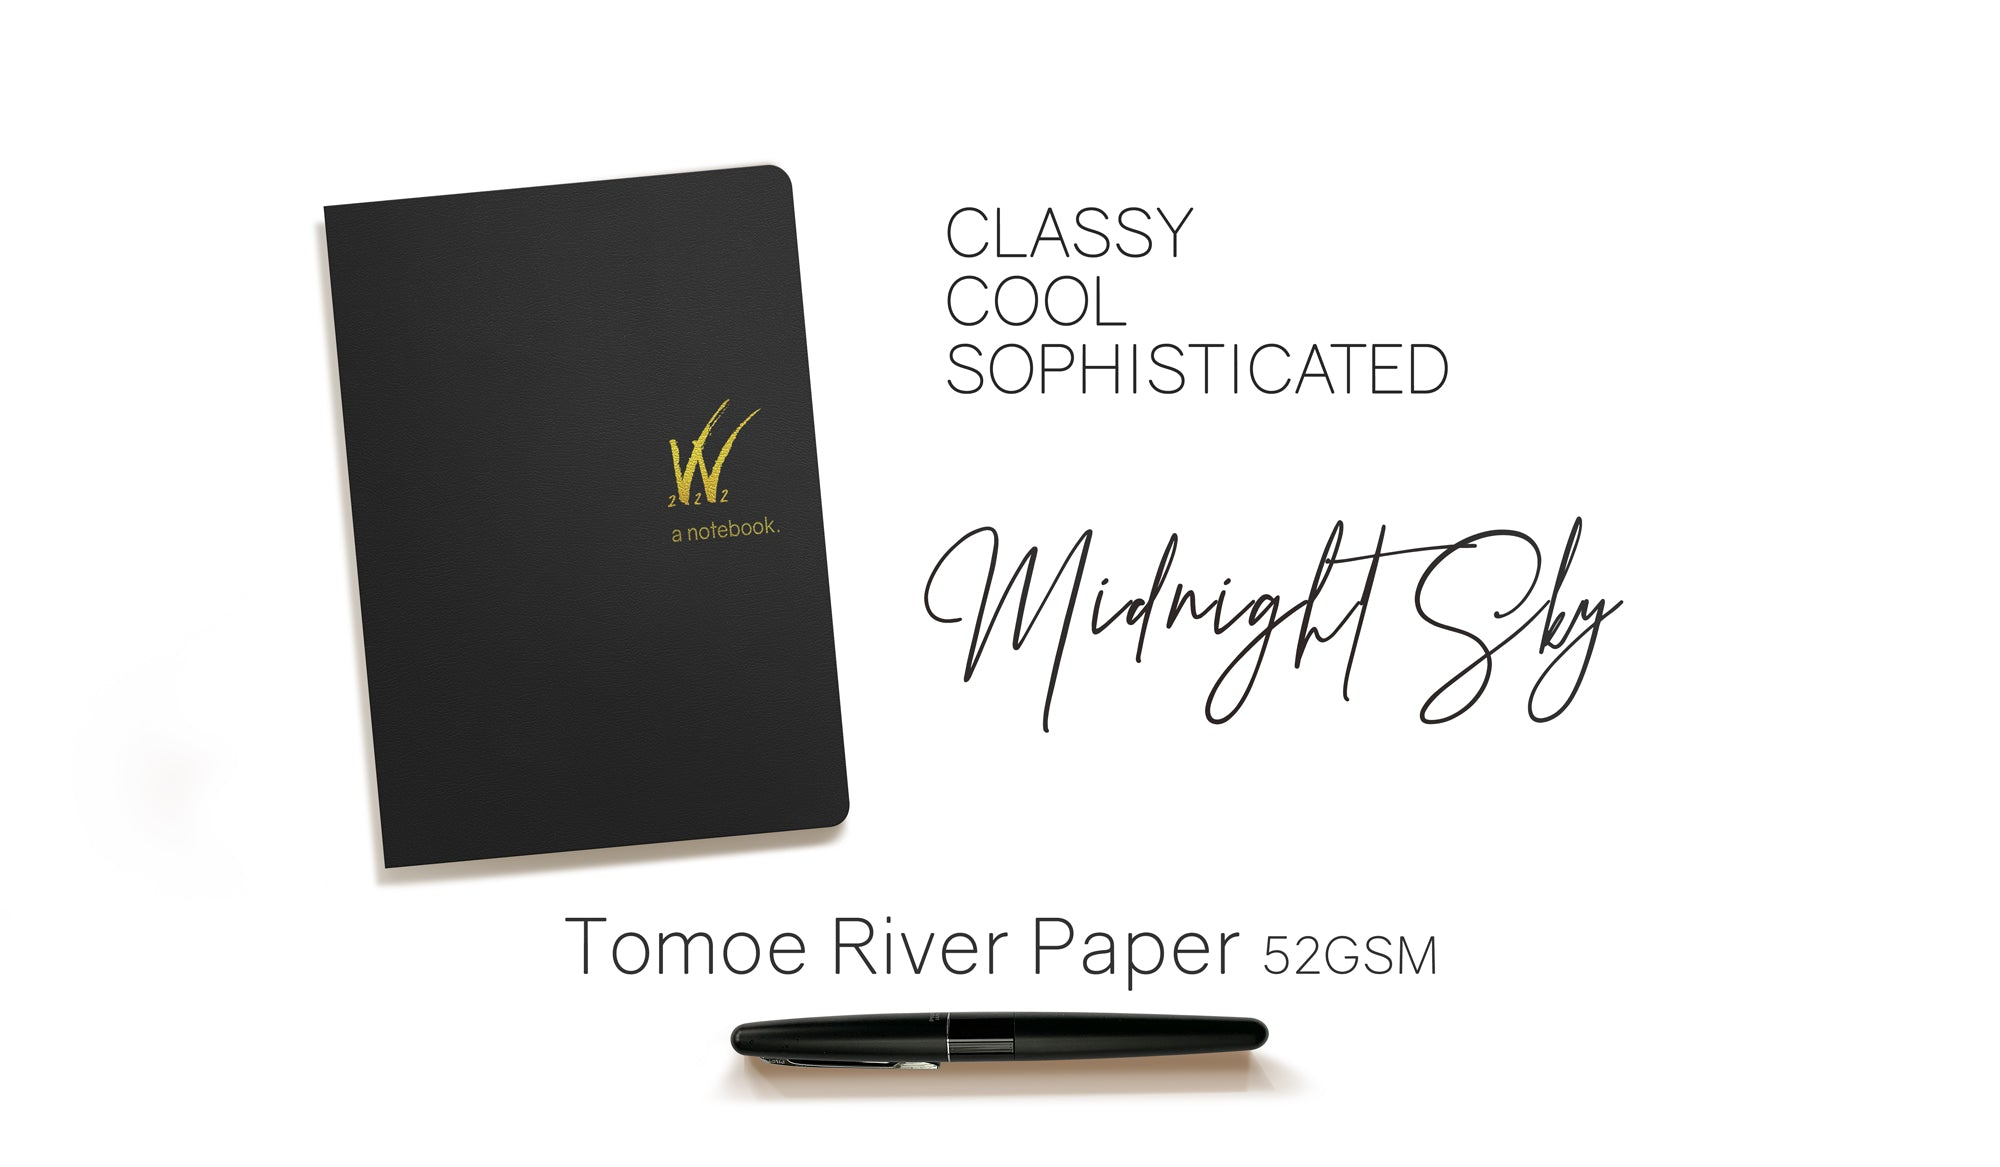 B6 52gsm Tomoe River Paper Notebook with black cover by Wonderland 222.  368 pages of smooth, ultra lightweight fountain pen friendly Tomoe River Paper.